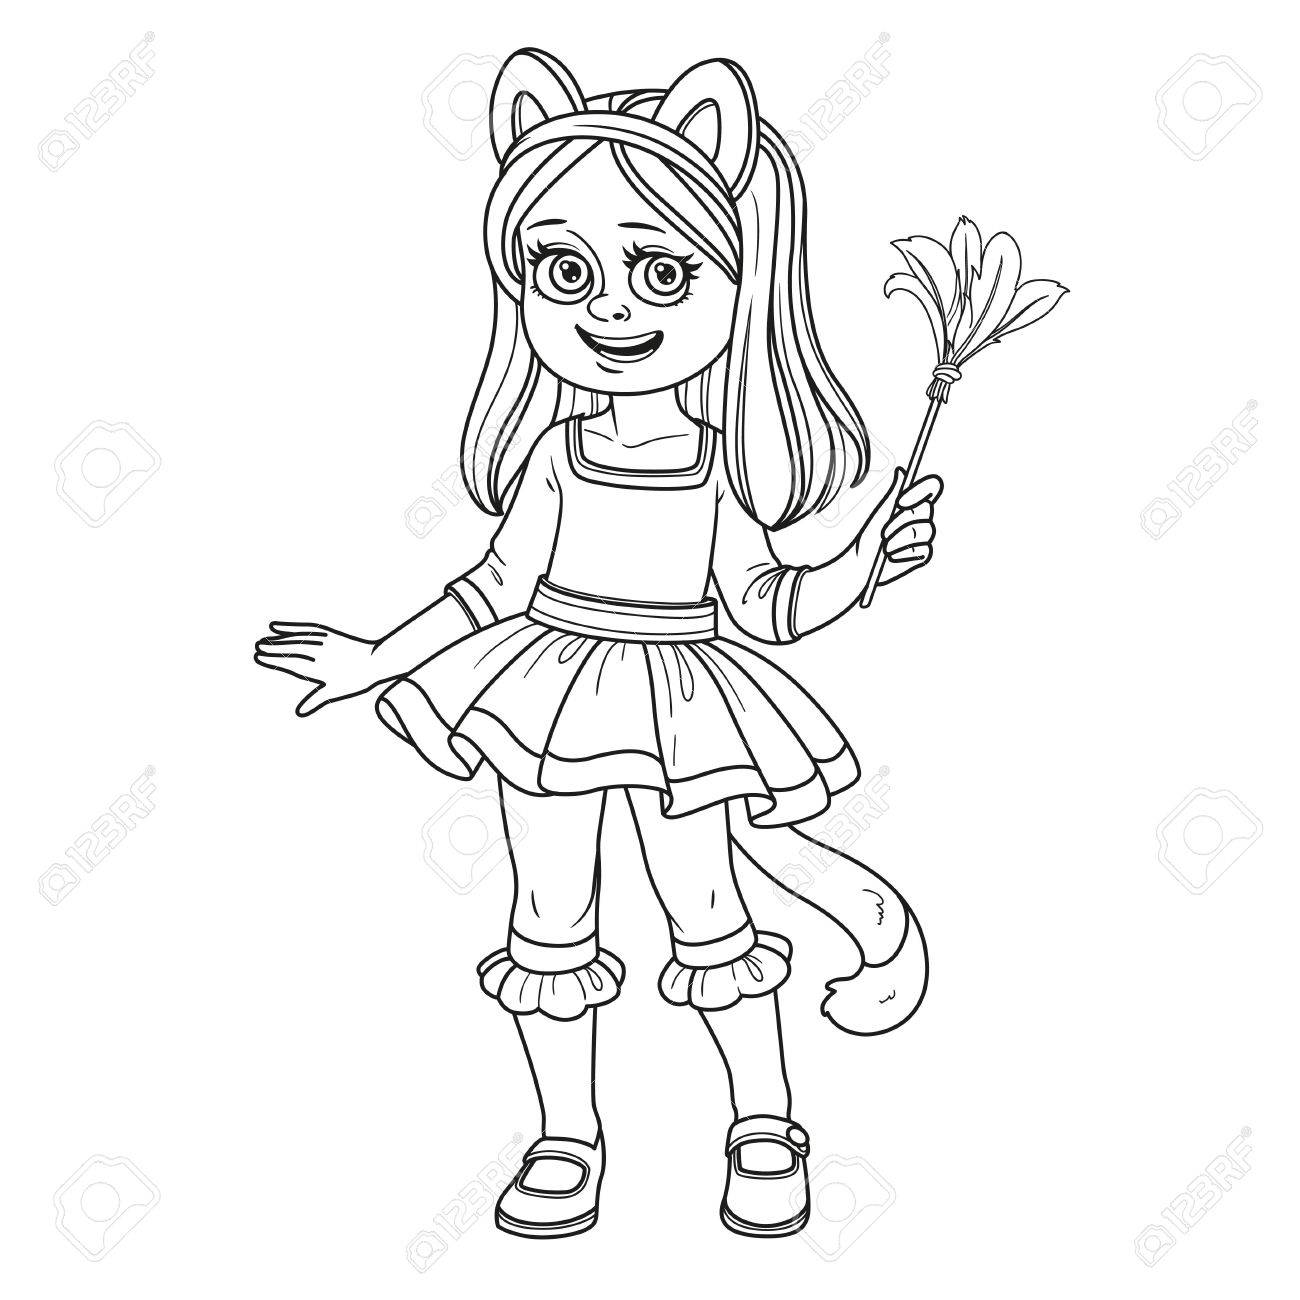 Cute Girl In Cat Costume Outlined For Coloring Page Royalty Free ...